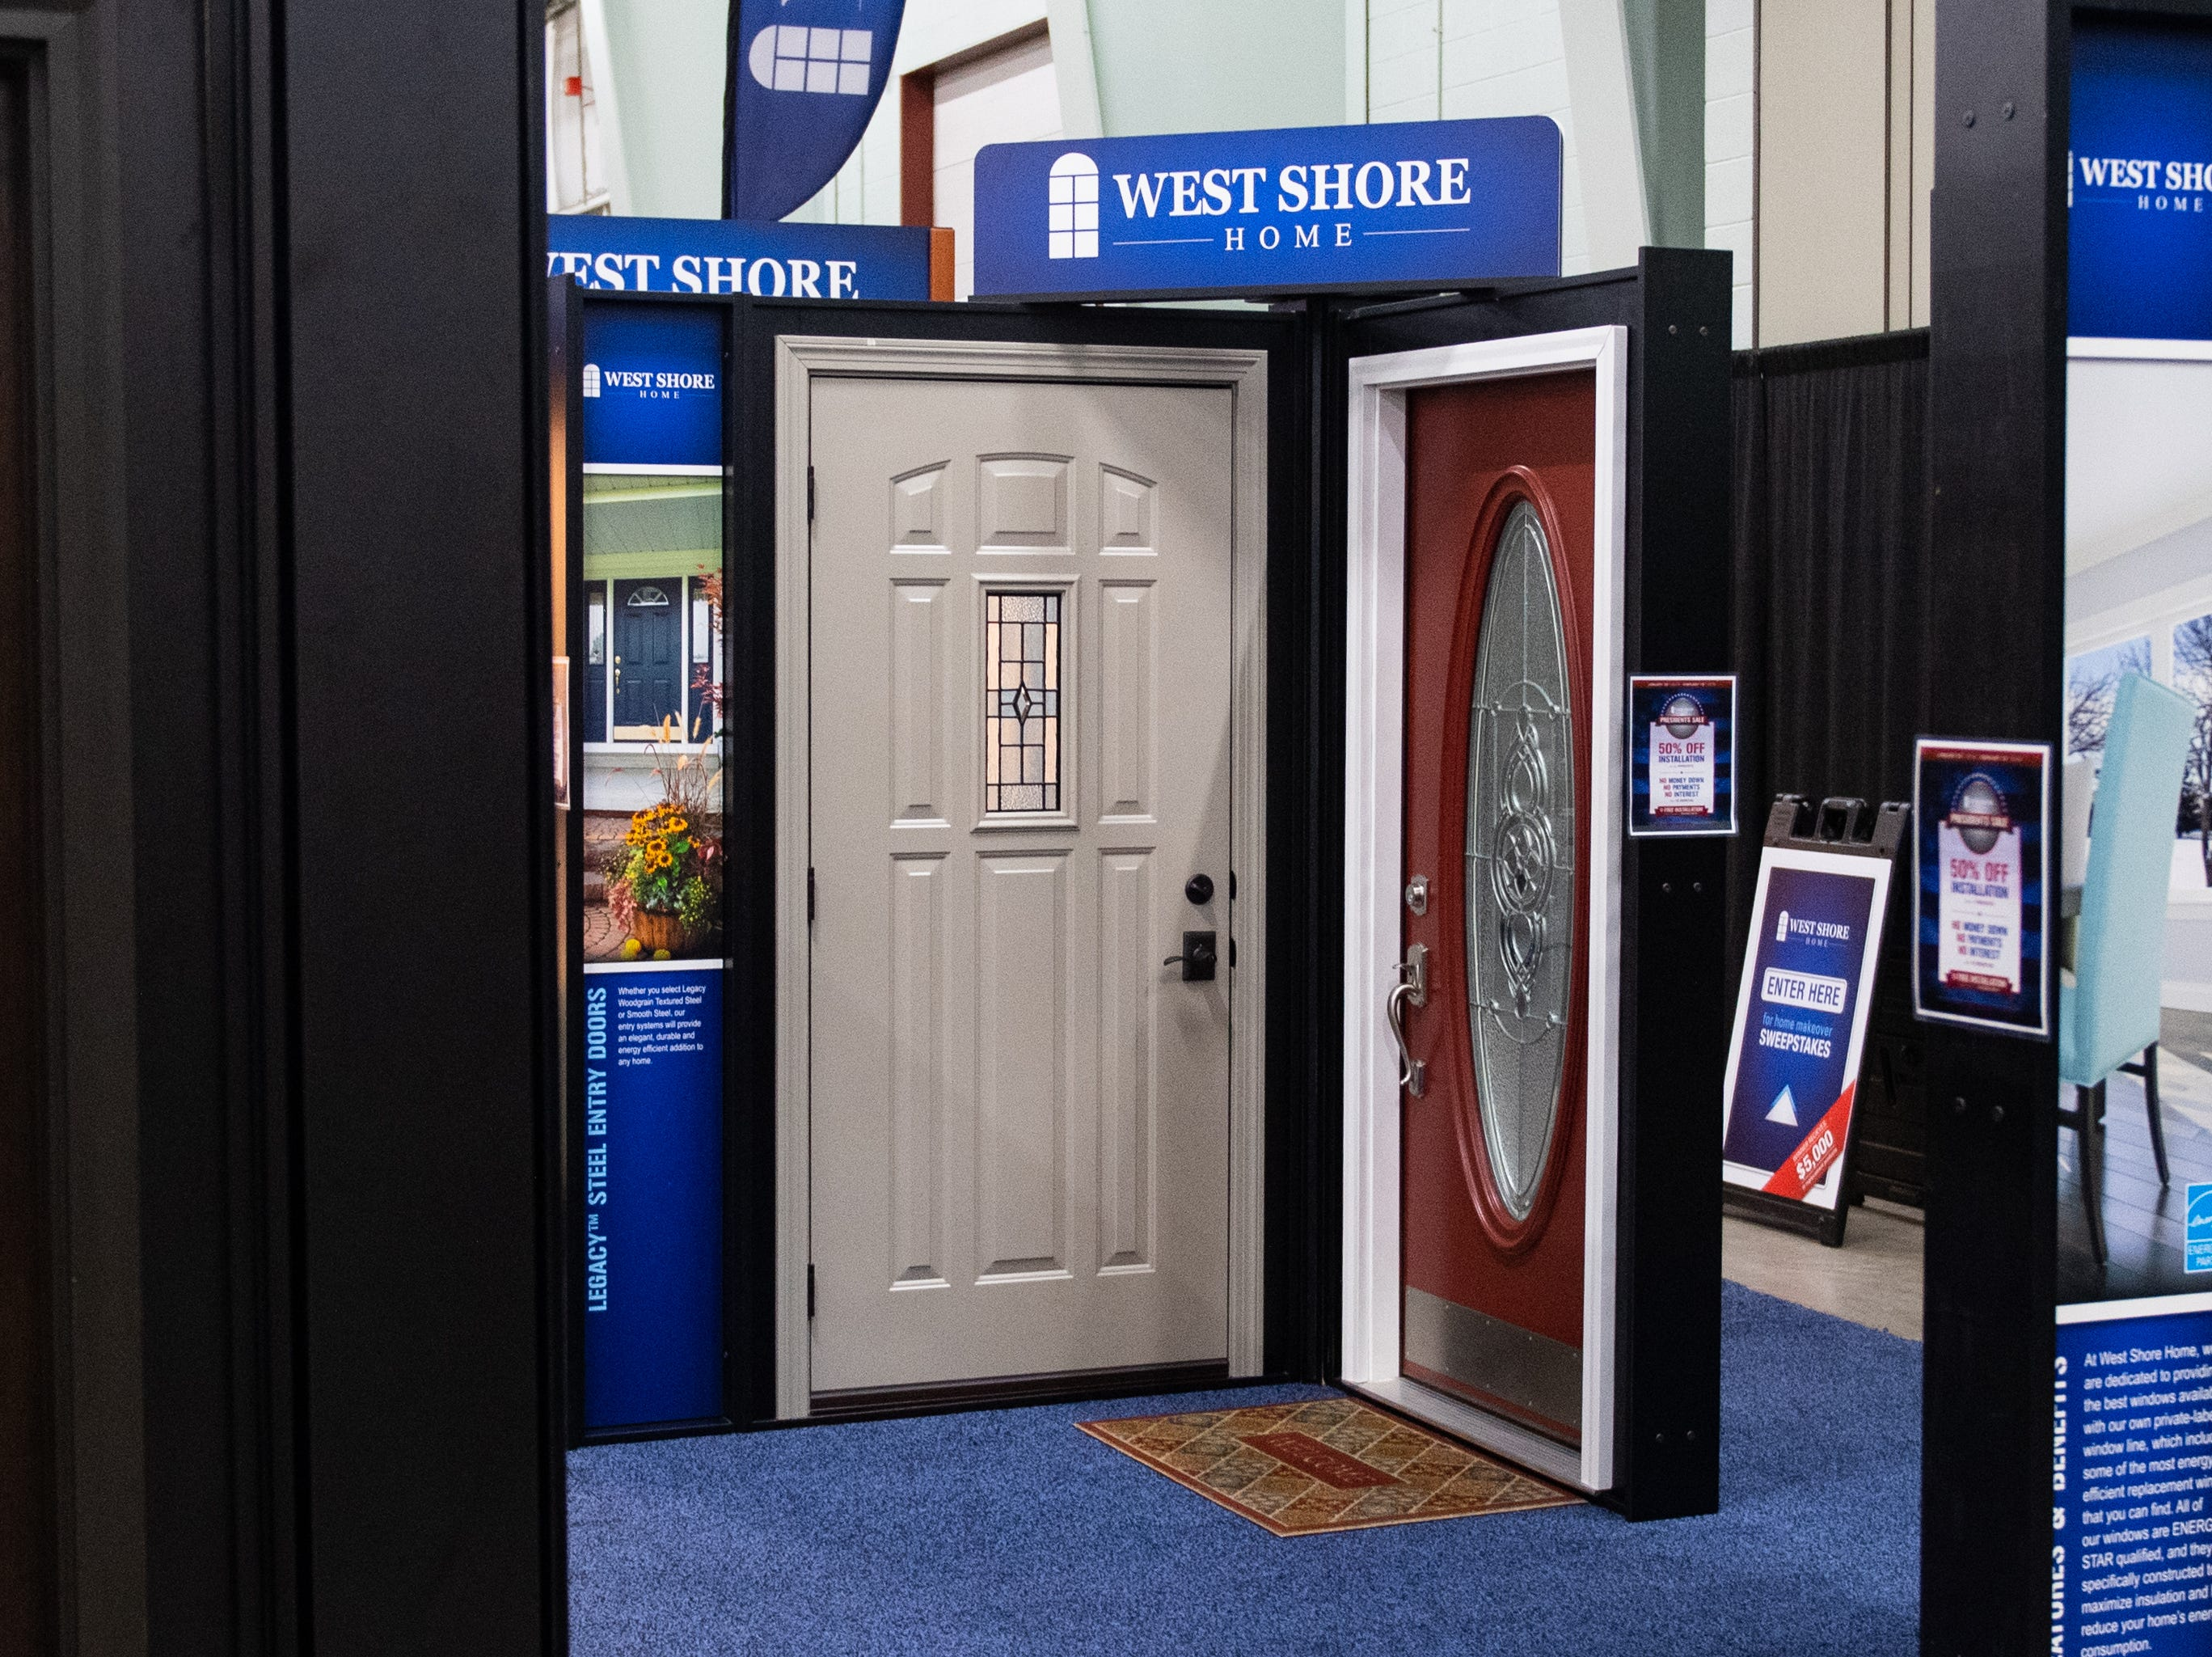 West Shore Home has a booth at the 2019 Home & Garden Show, February 8, 2019.